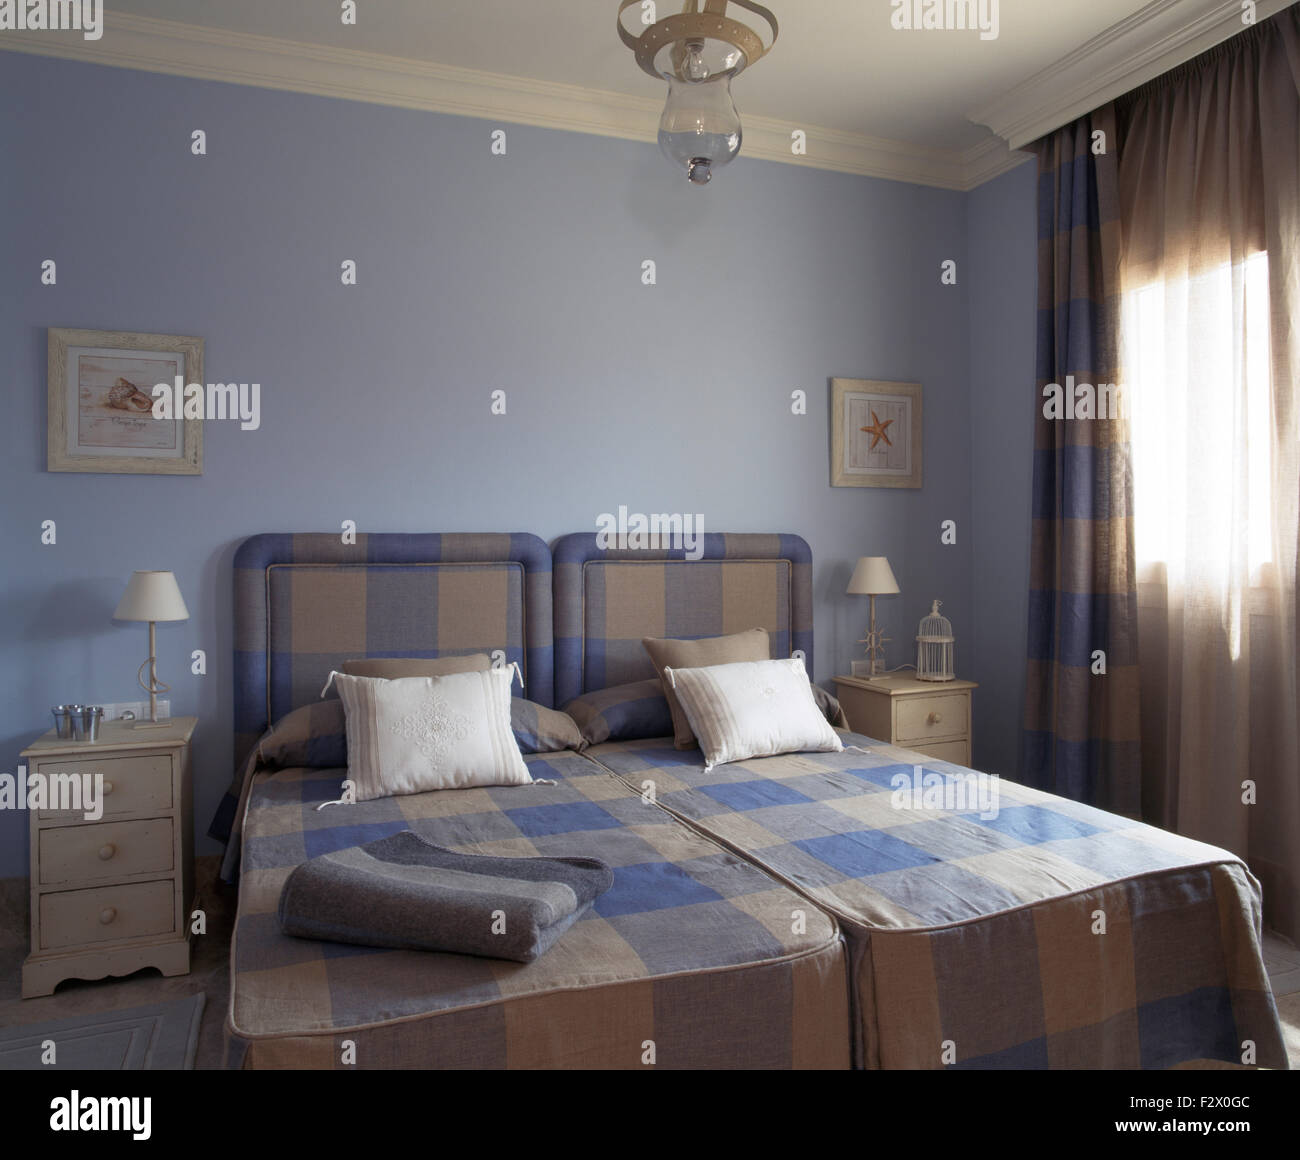 Image of: Blue Beige Checked Bedspreads And Headboards On Twin Beds In Pale Stock Photo Alamy